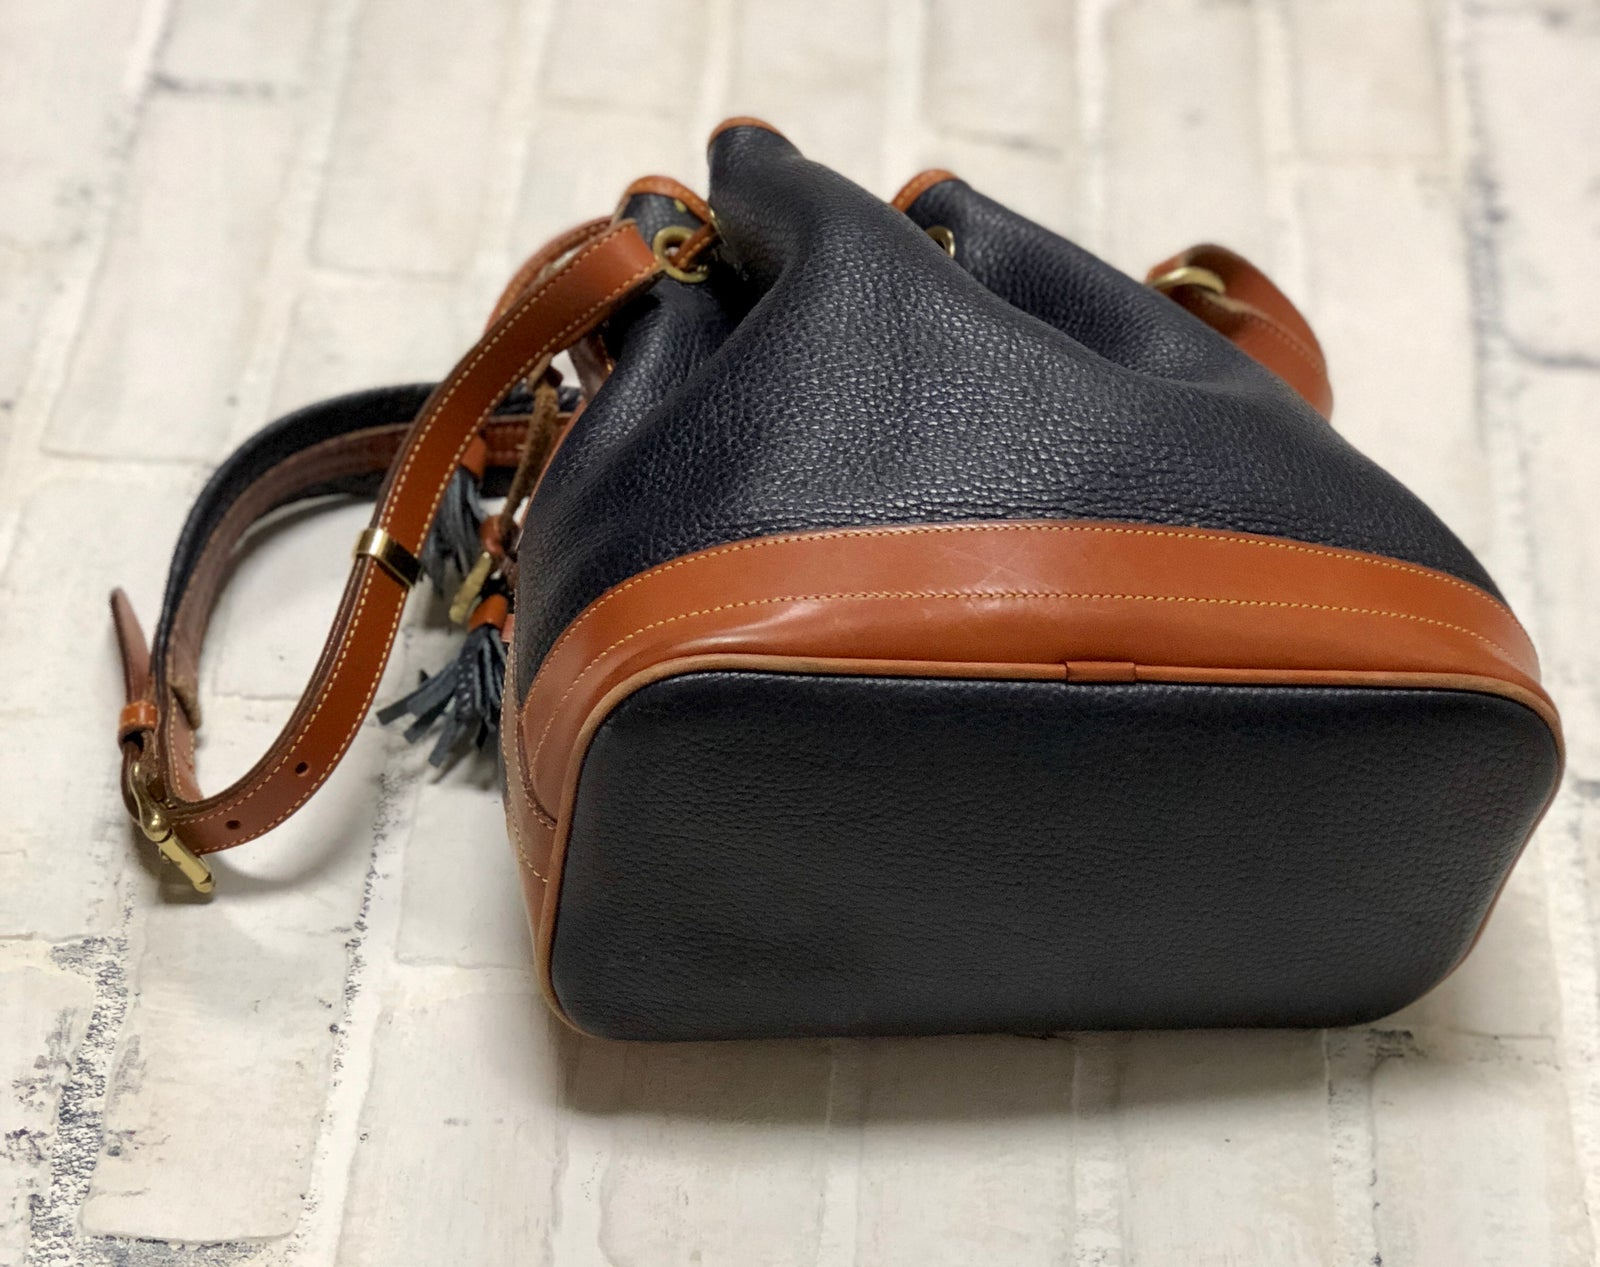 Dooney & Bourke Vintage Bag